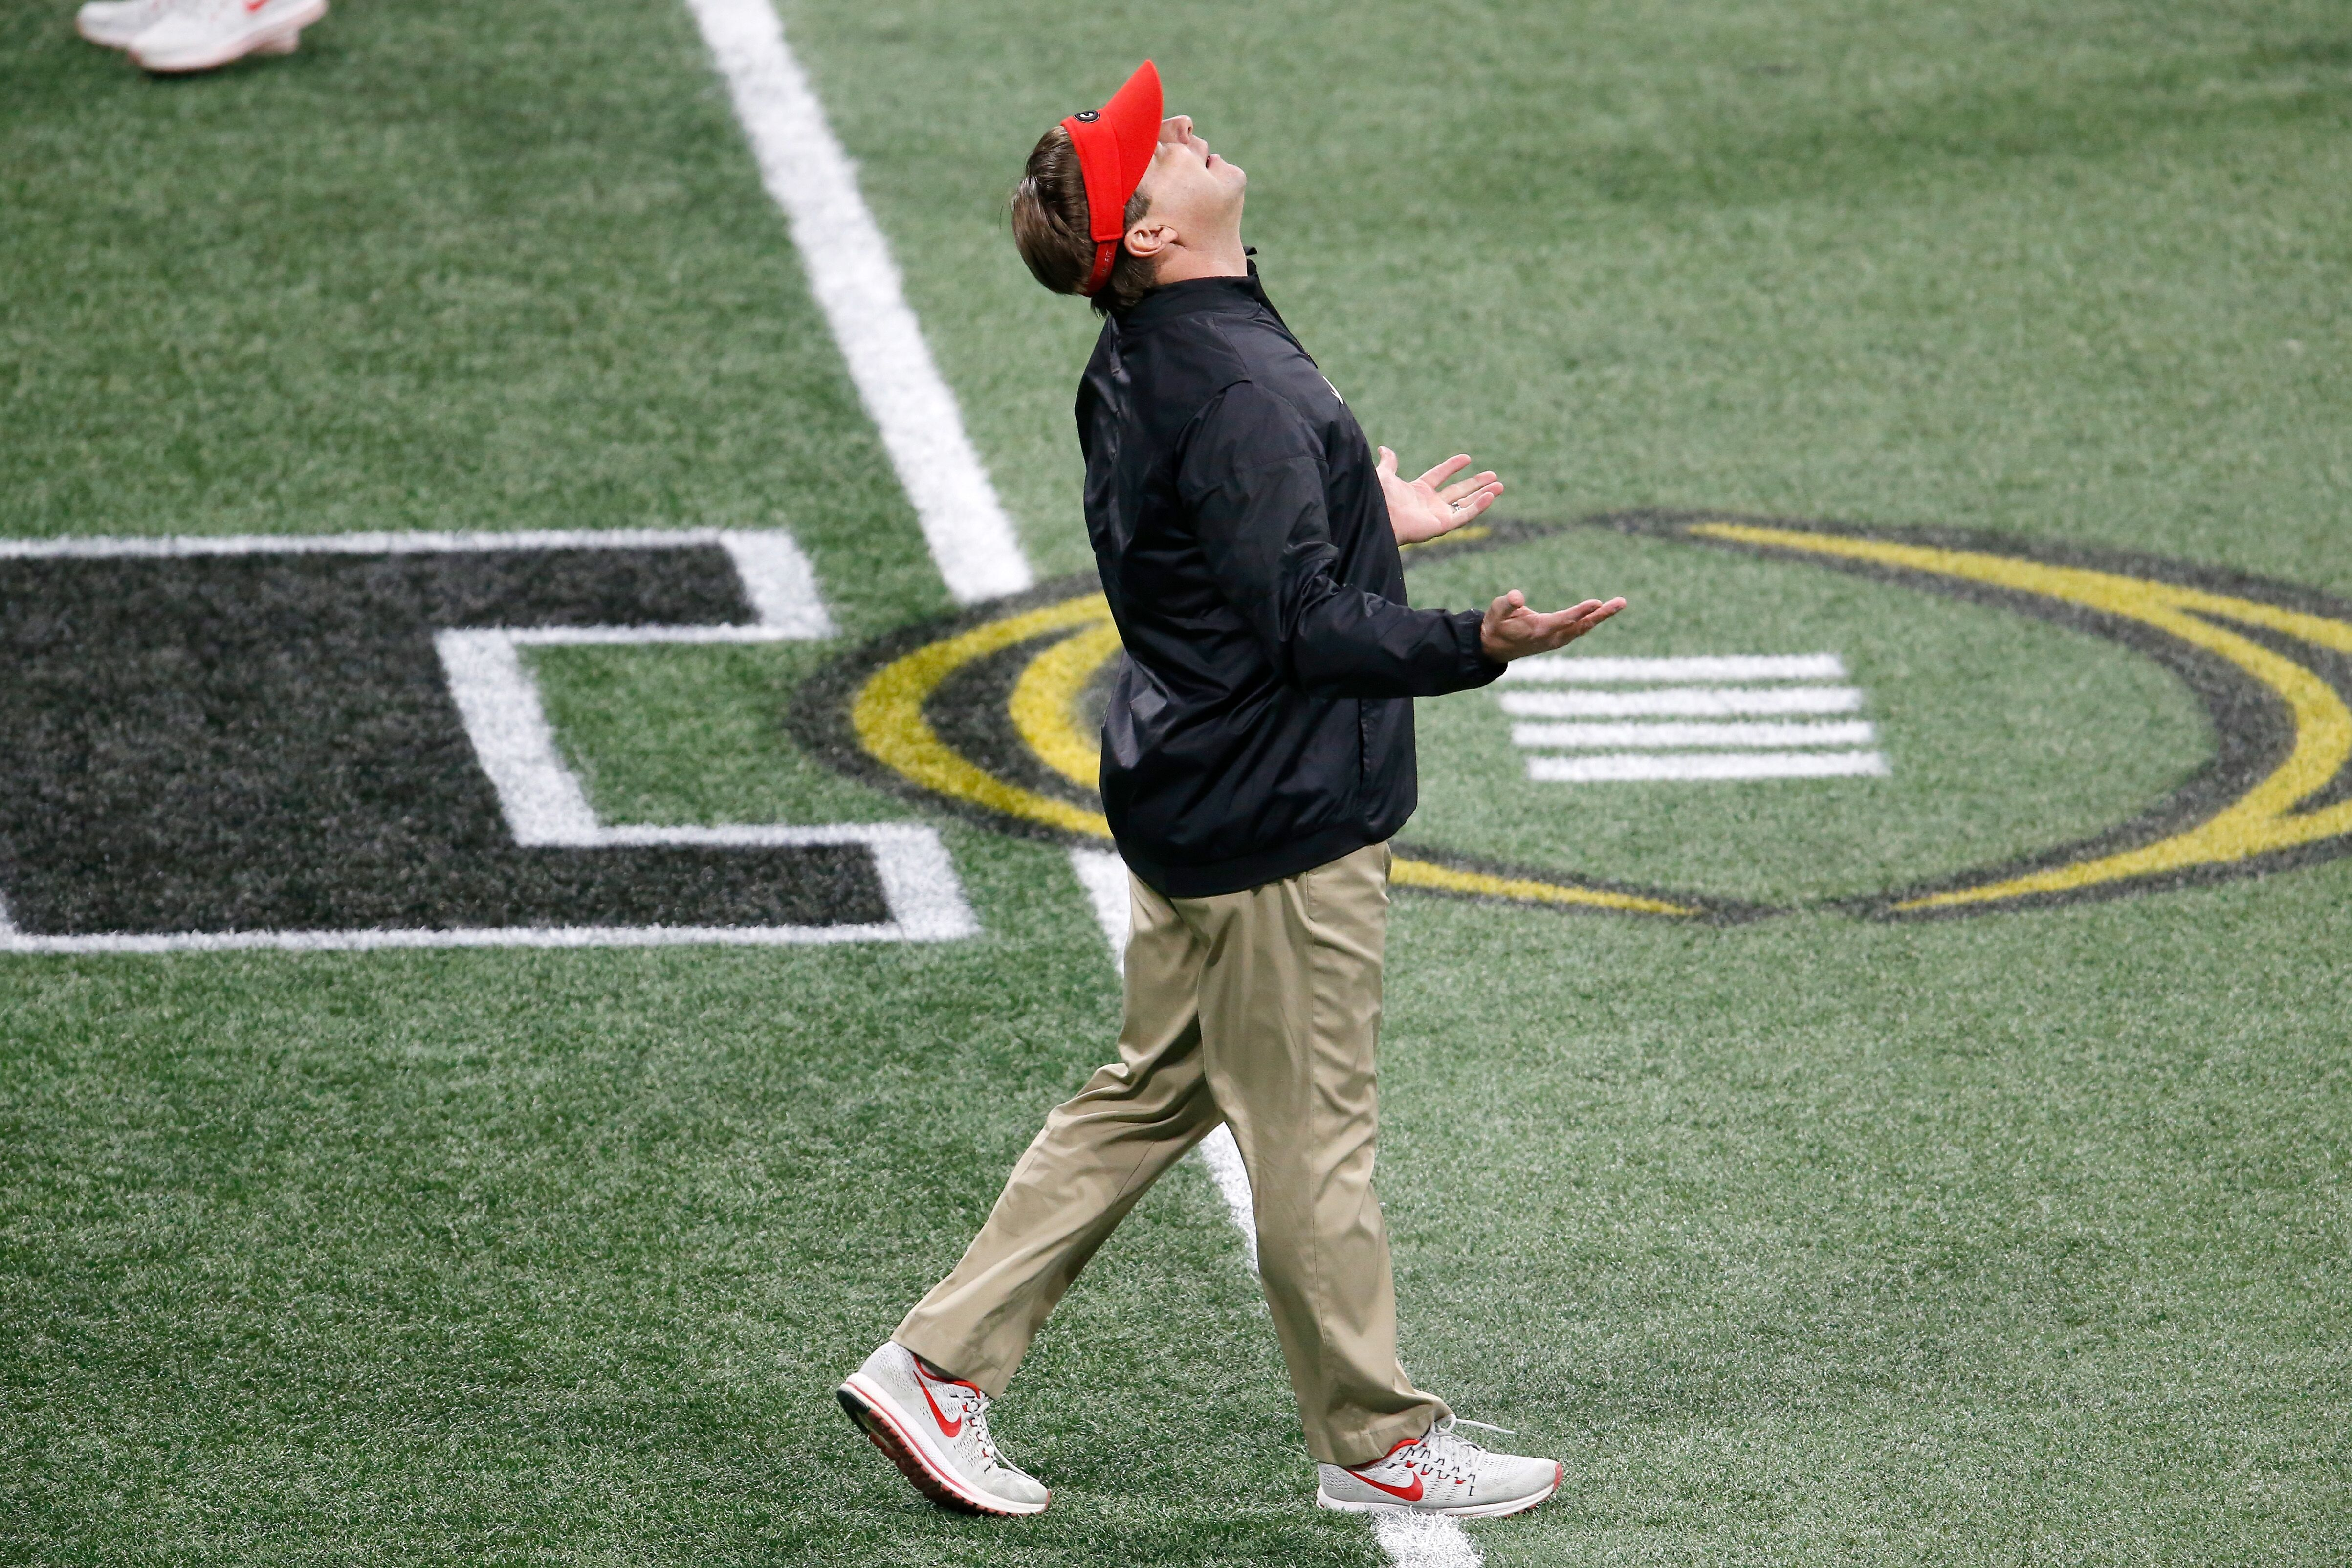 902748106-cfp-national-championship-presented-by-at.jpg